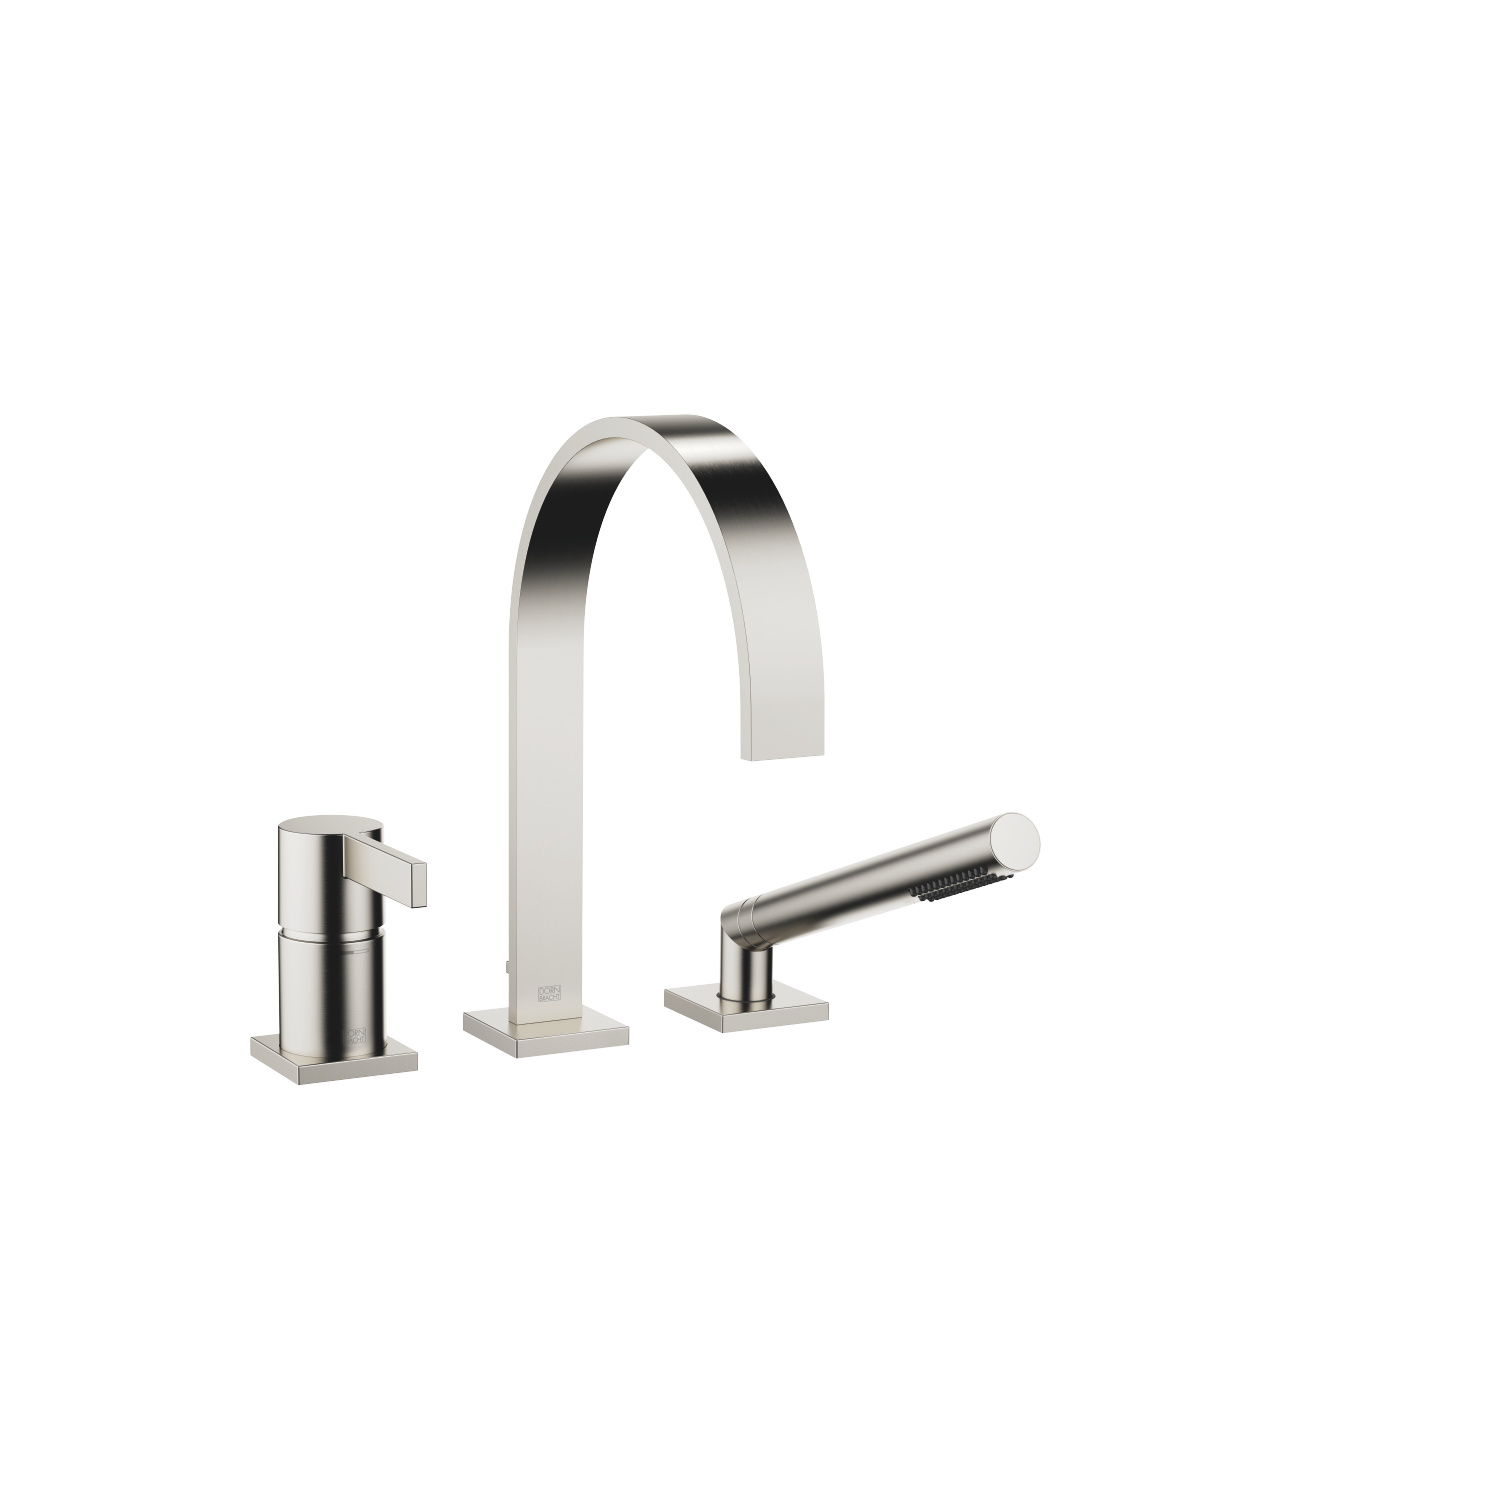 Three-hole single-lever bath mixer for bath rim or tile edge installation - platinum matt